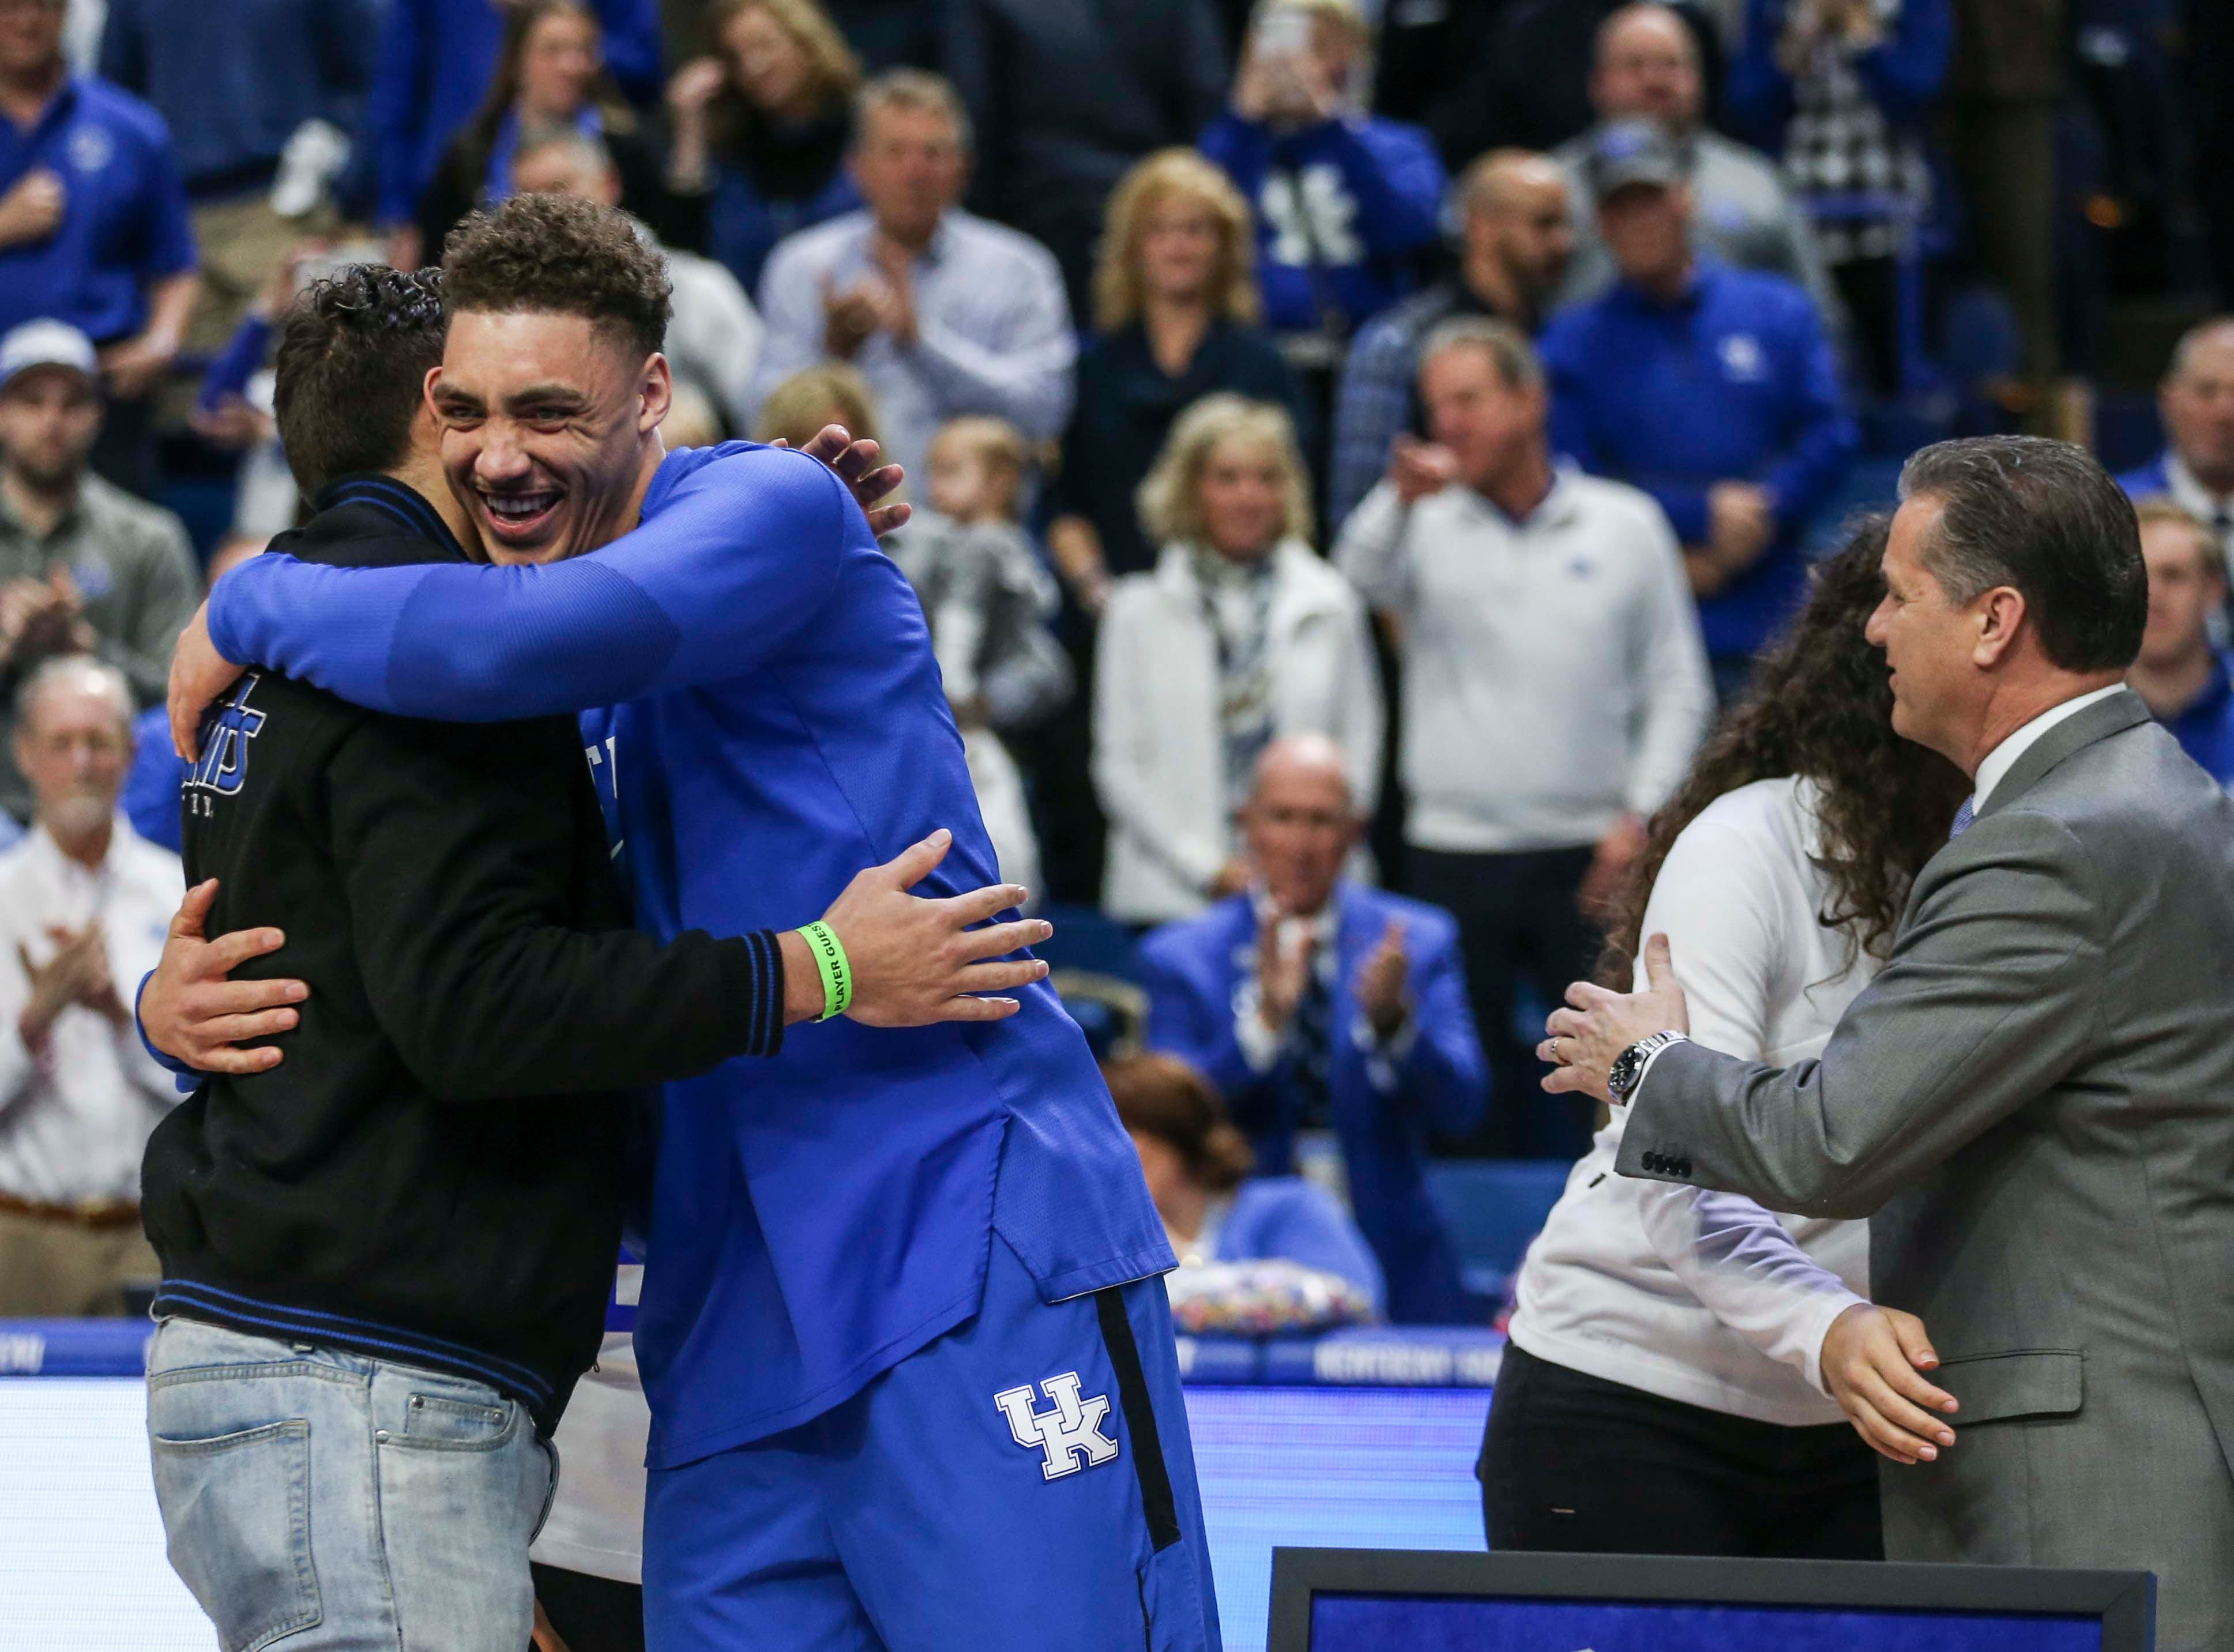 Kentucky's Reid Travis was honored on Senior Day before the game against Florida. March 9, 2019